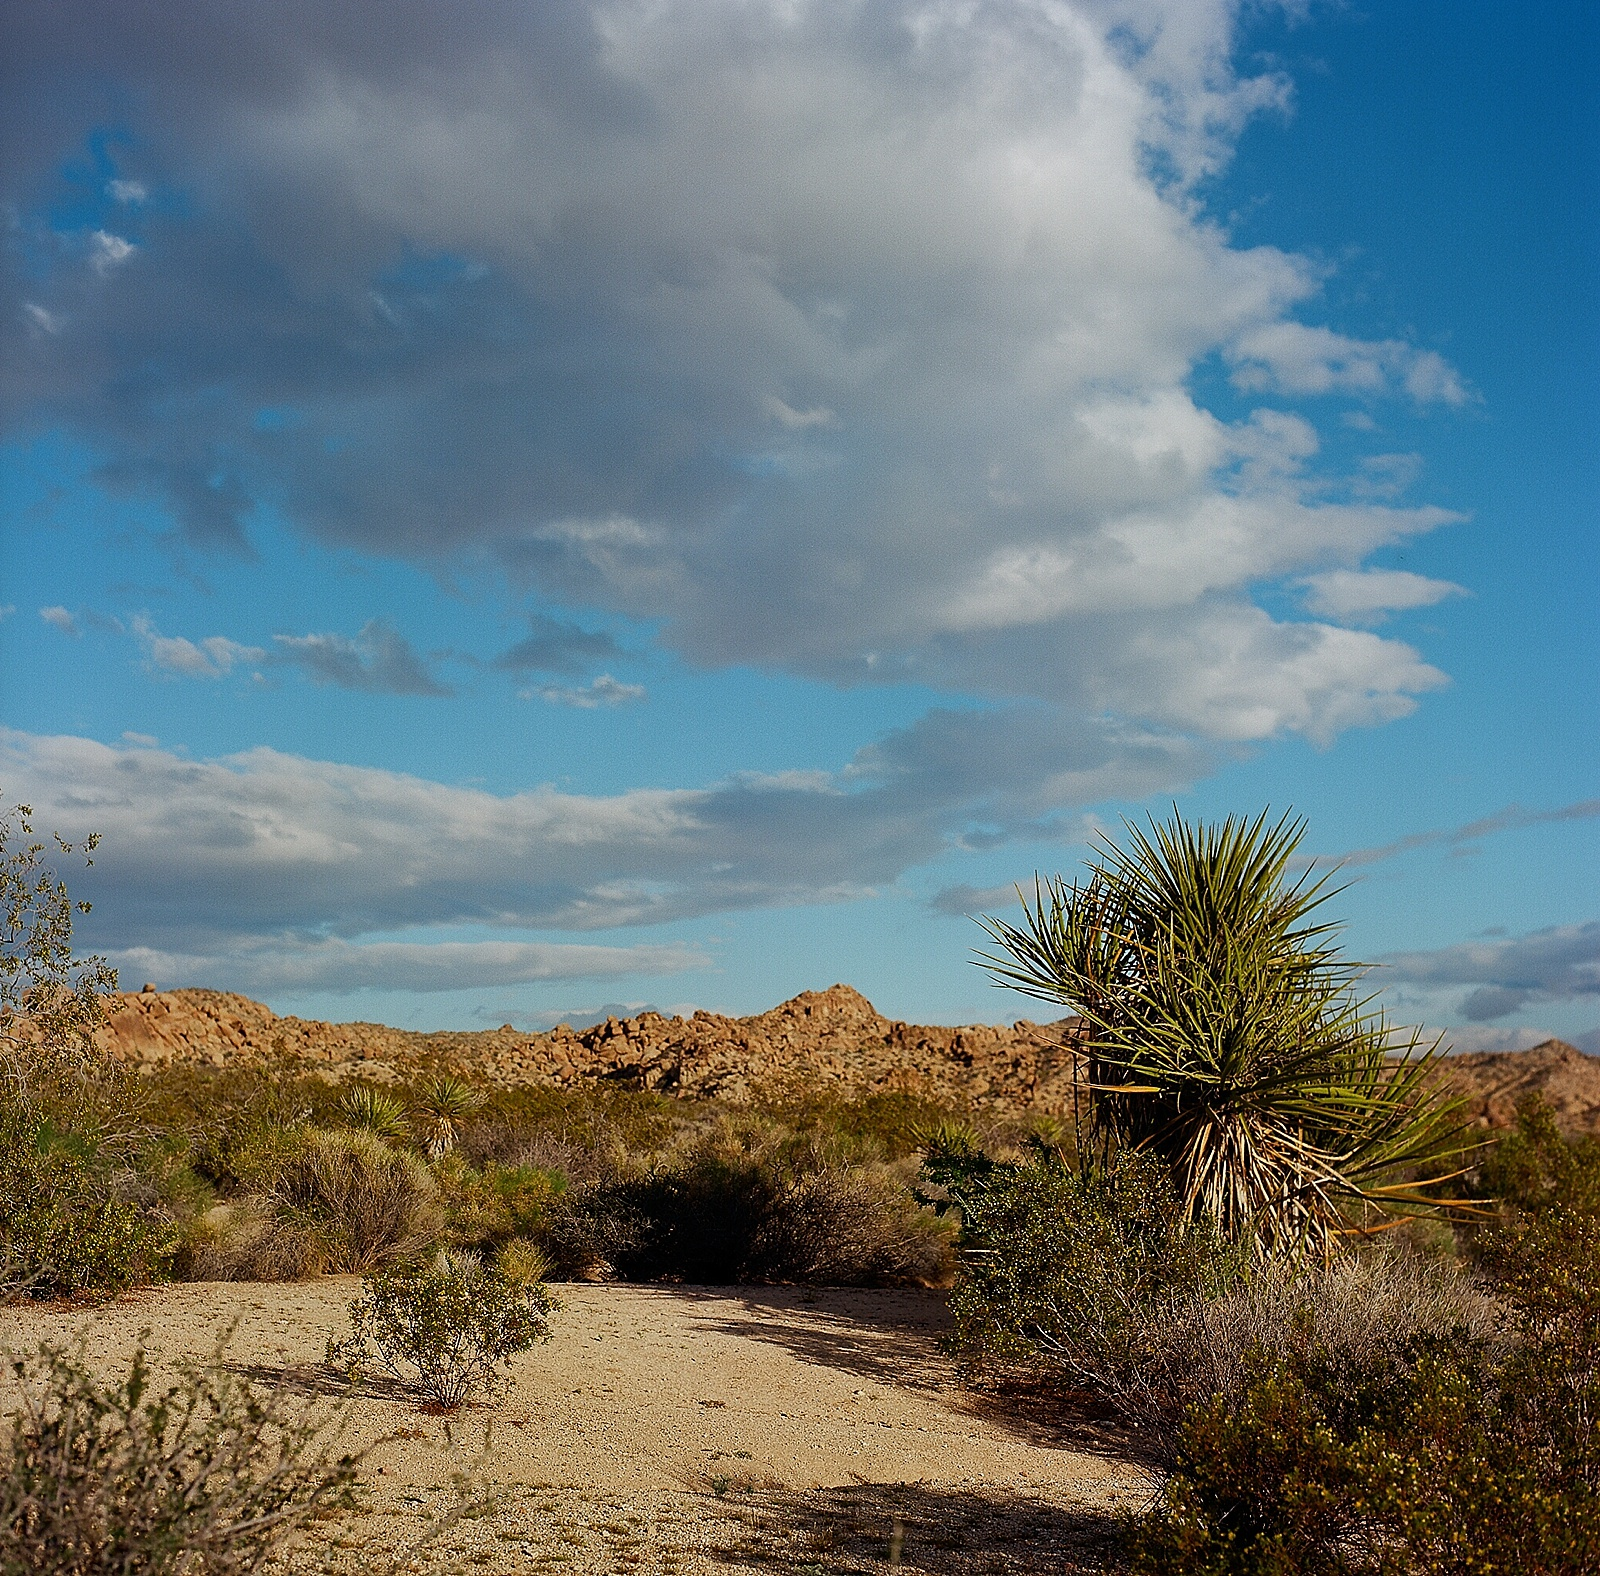 Joshua Tree landscape photography on Ektar film by San Diego portrait photographer Lauren Nygard